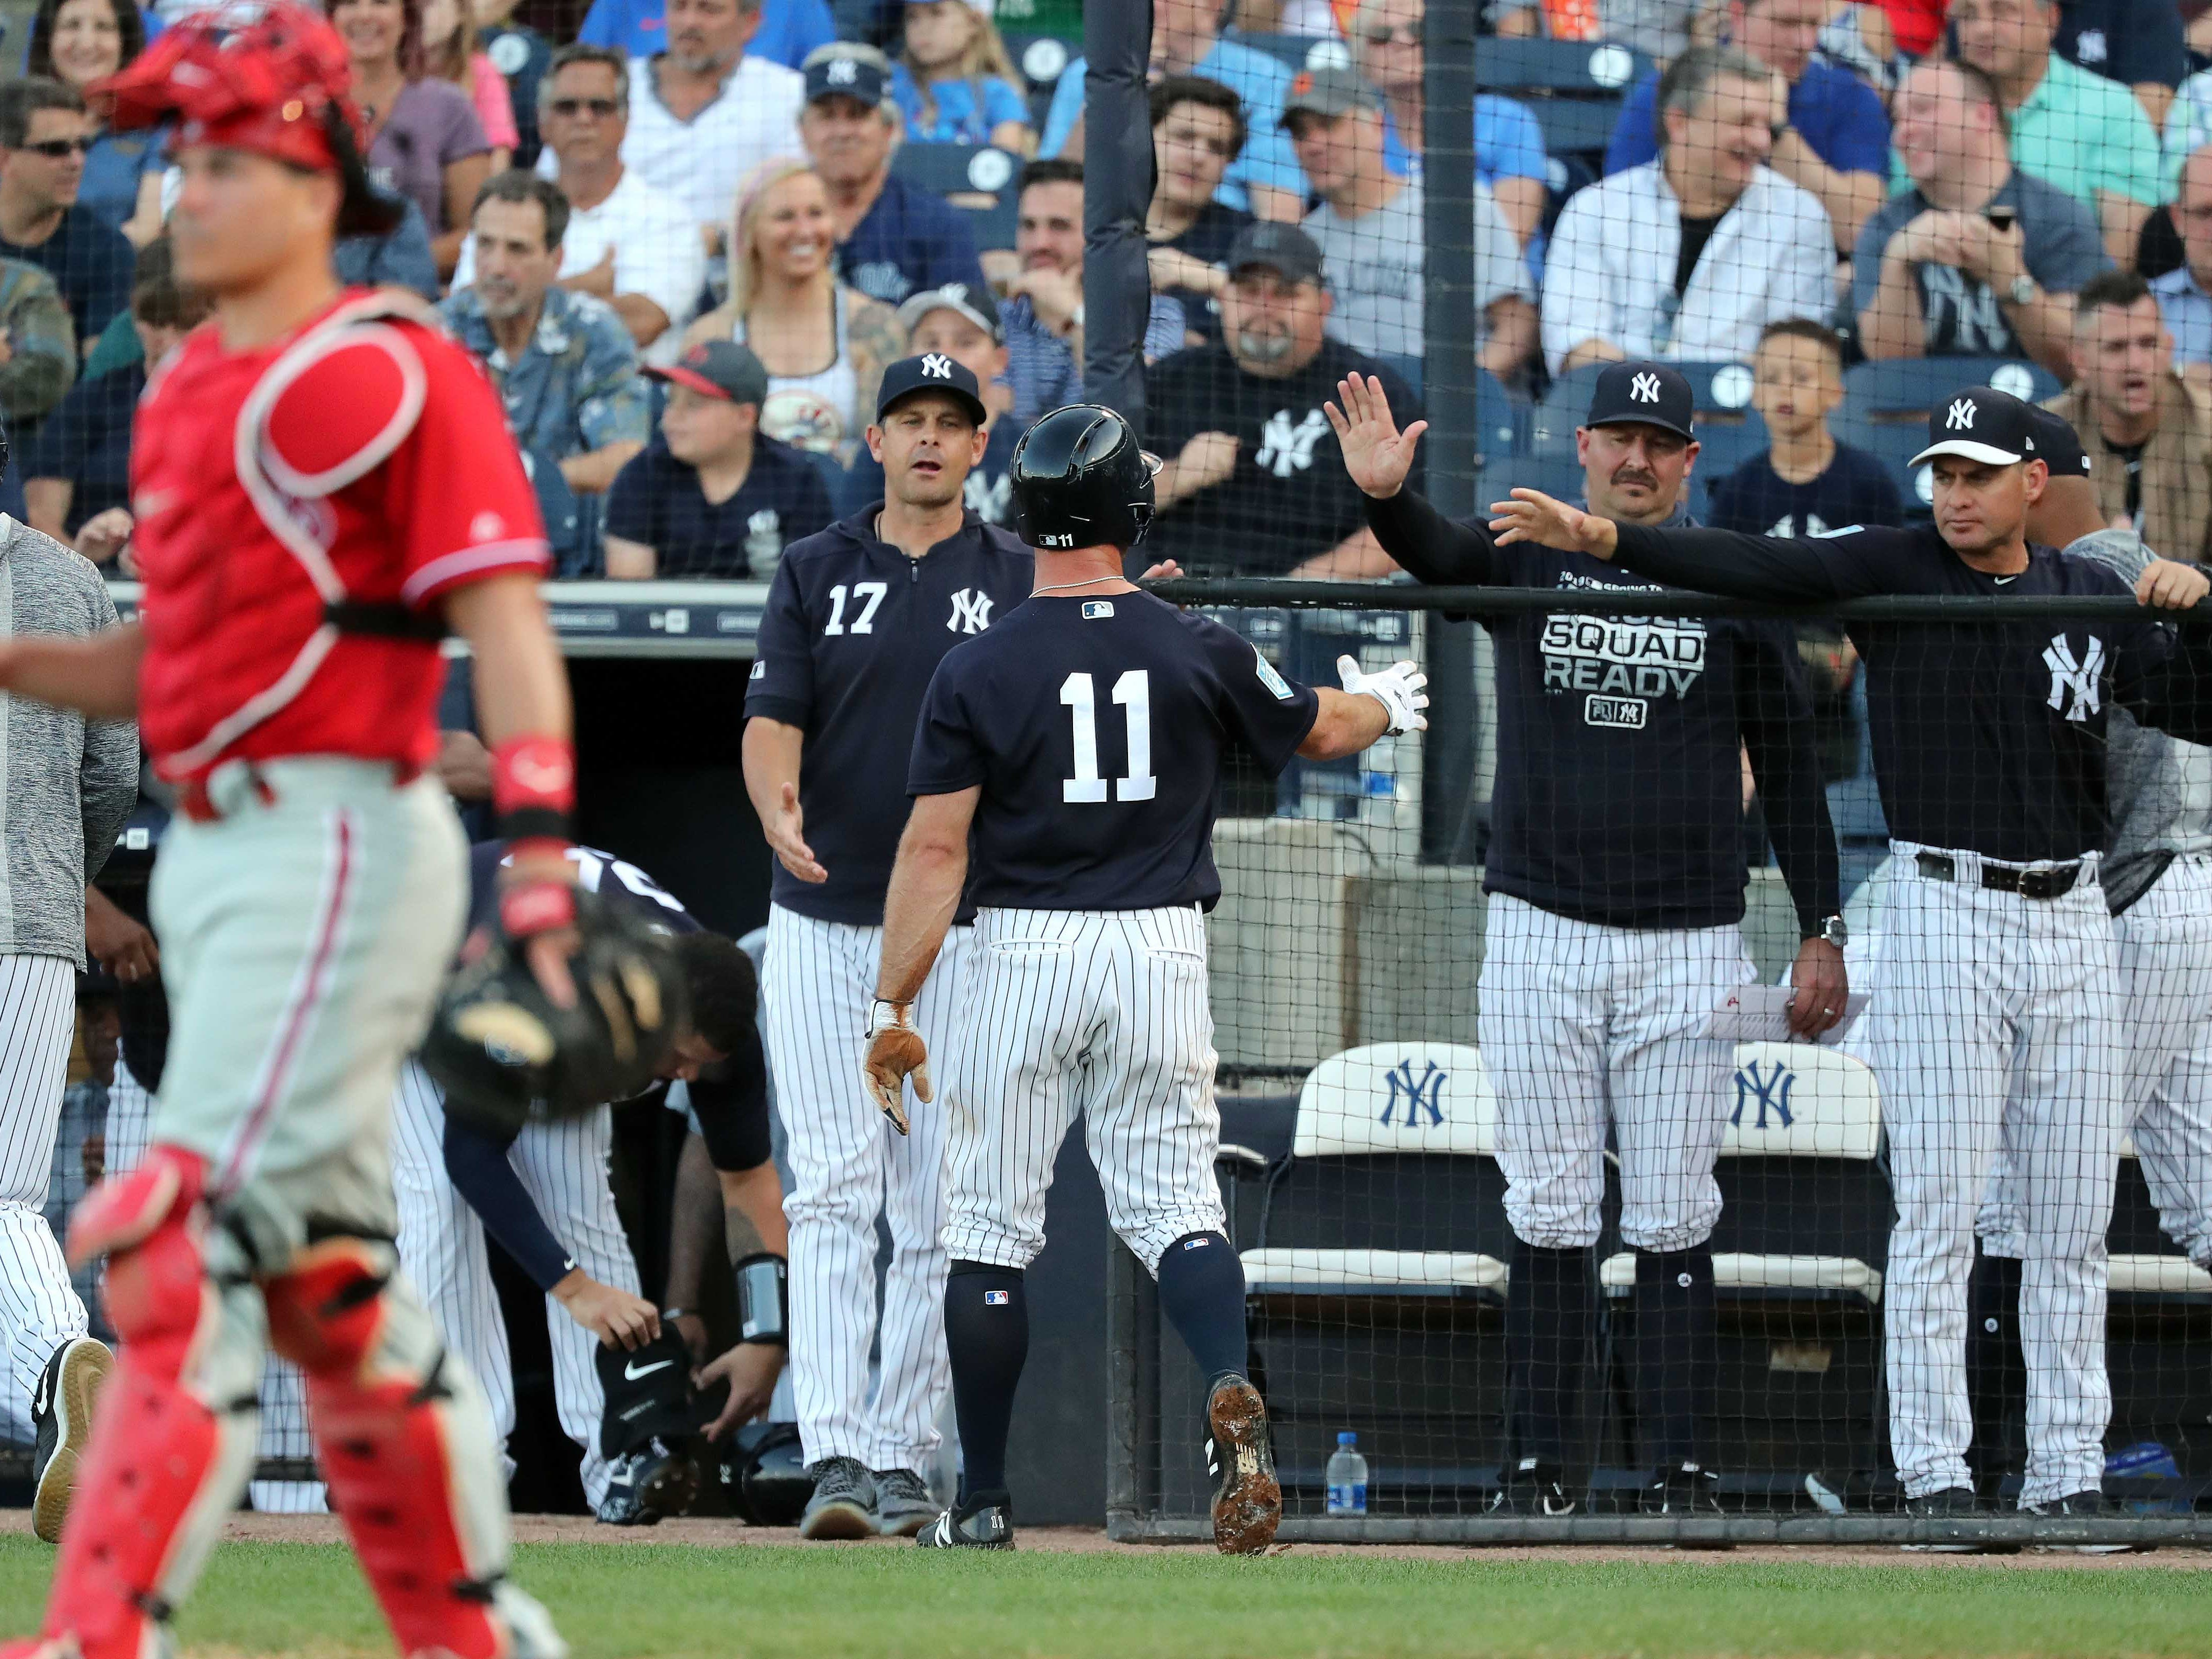 Mar 13, 2019; Tampa, FL, USA;New York Yankees center fielder Brett Gardner (11) celebrates after scoring a run during the first inning against the Philadelphia Phillies at George M. Steinbrenner Field.